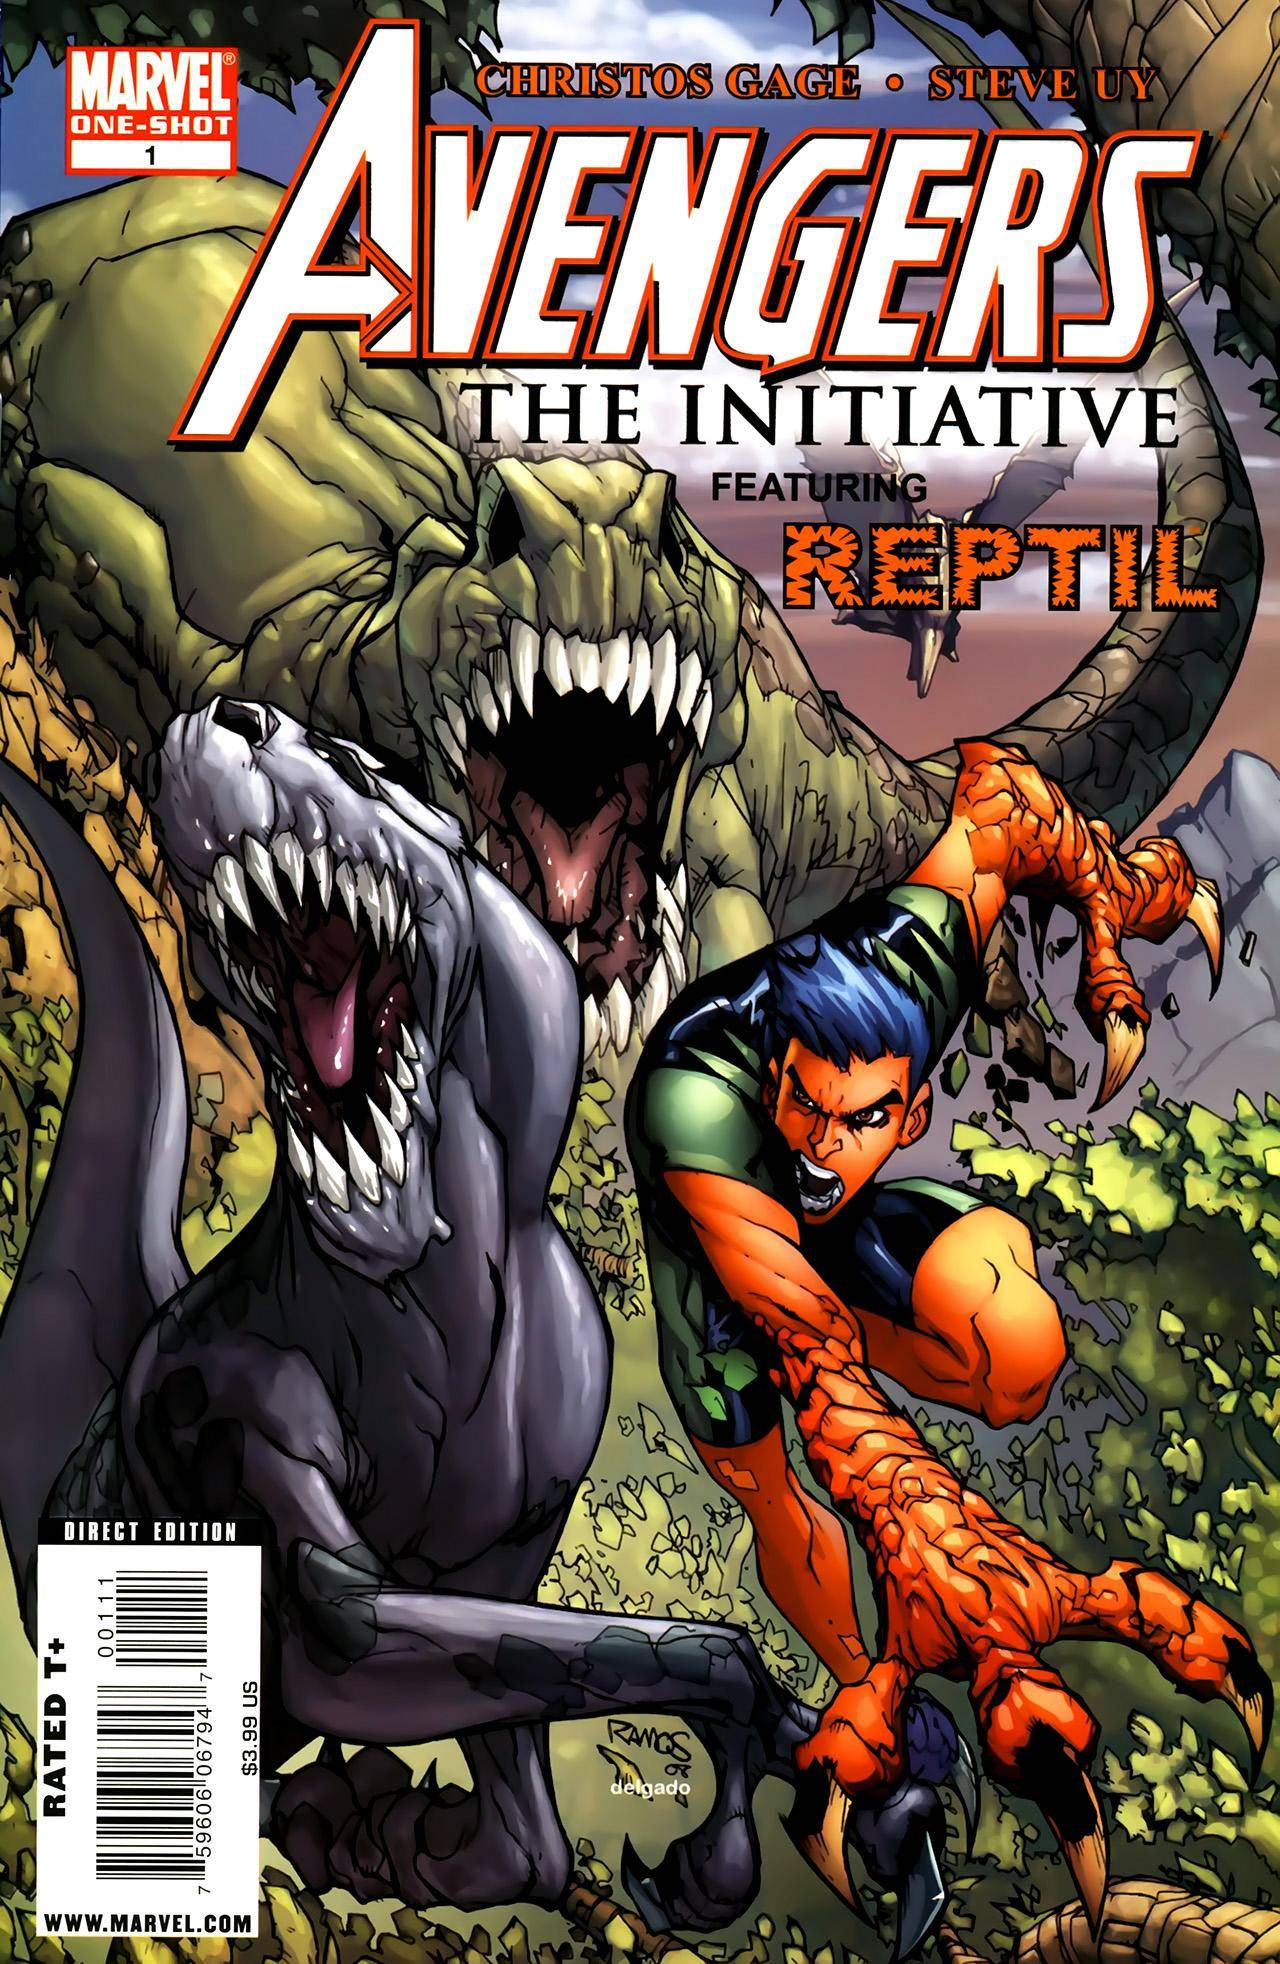 For Whomever - Avengers The Initiative featuring Reptil cbr